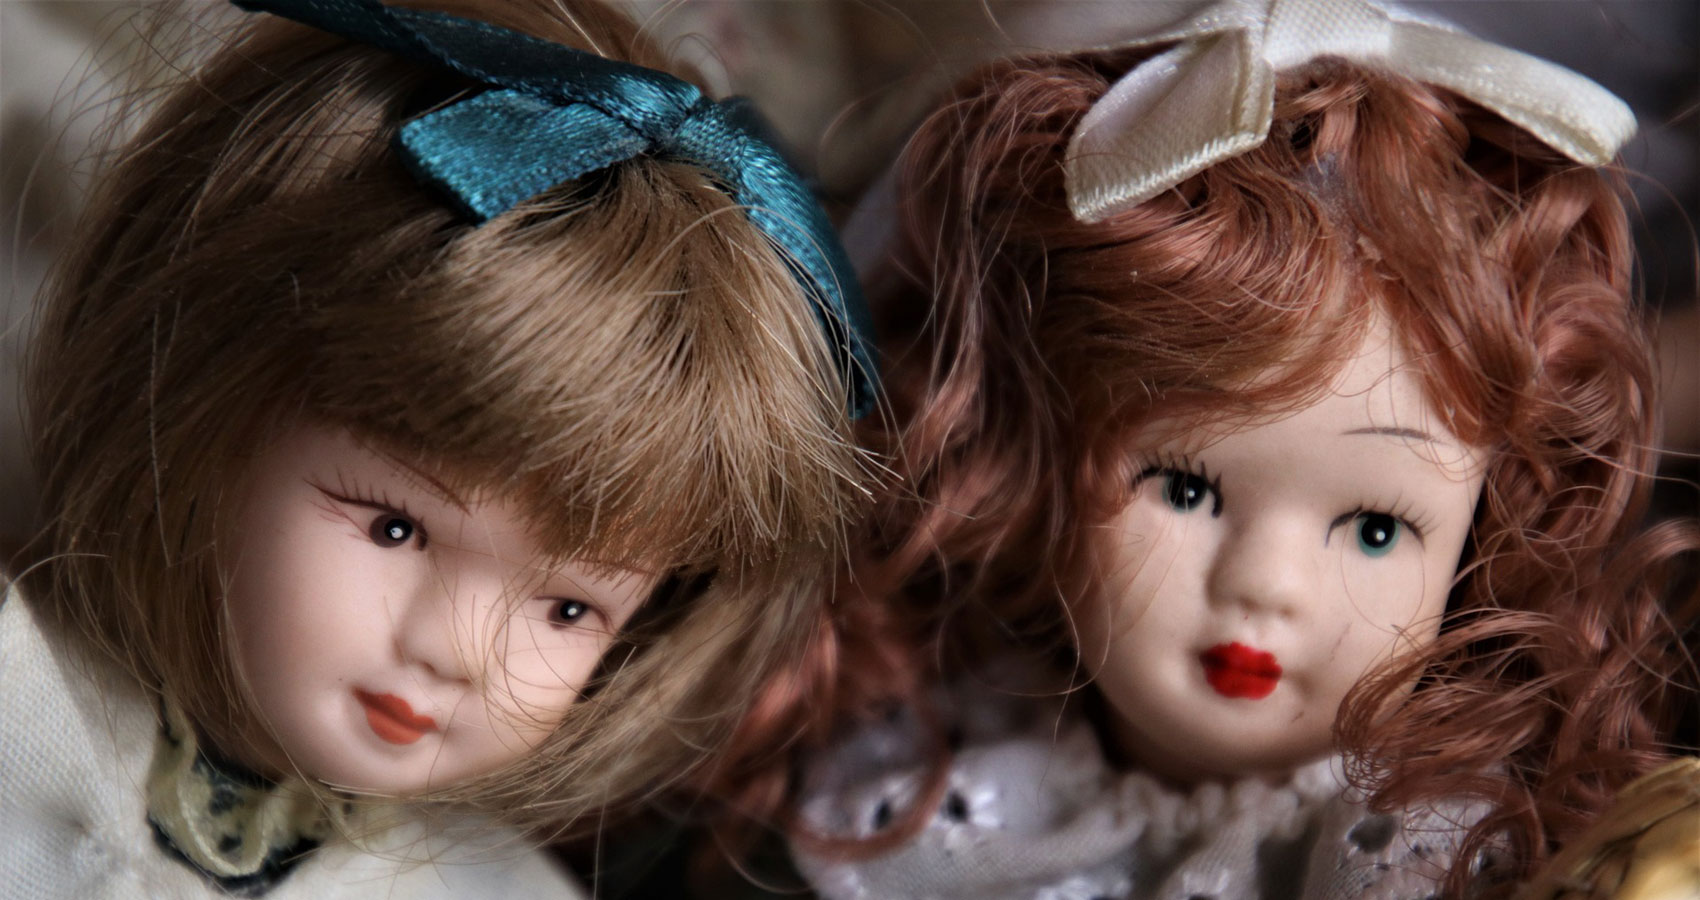 Little Doll, micropoetry written by Mary Bone at Spillwords.com